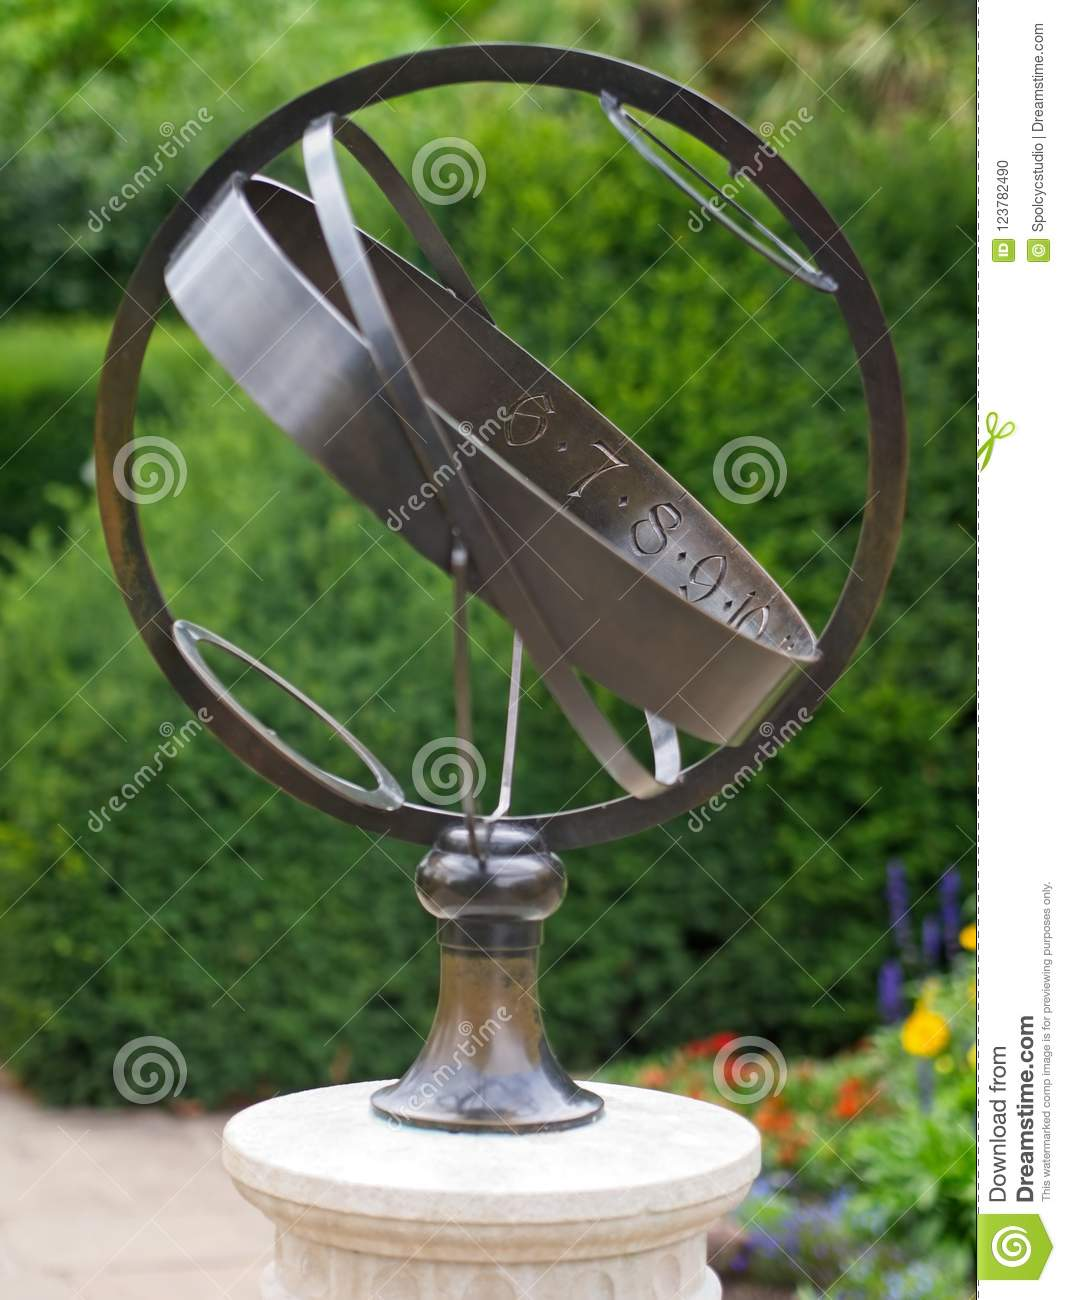 Download Decorative Armillary Sphere Globe Metal Sculpture. Stock Photo    Image Of Garden, Outdoor